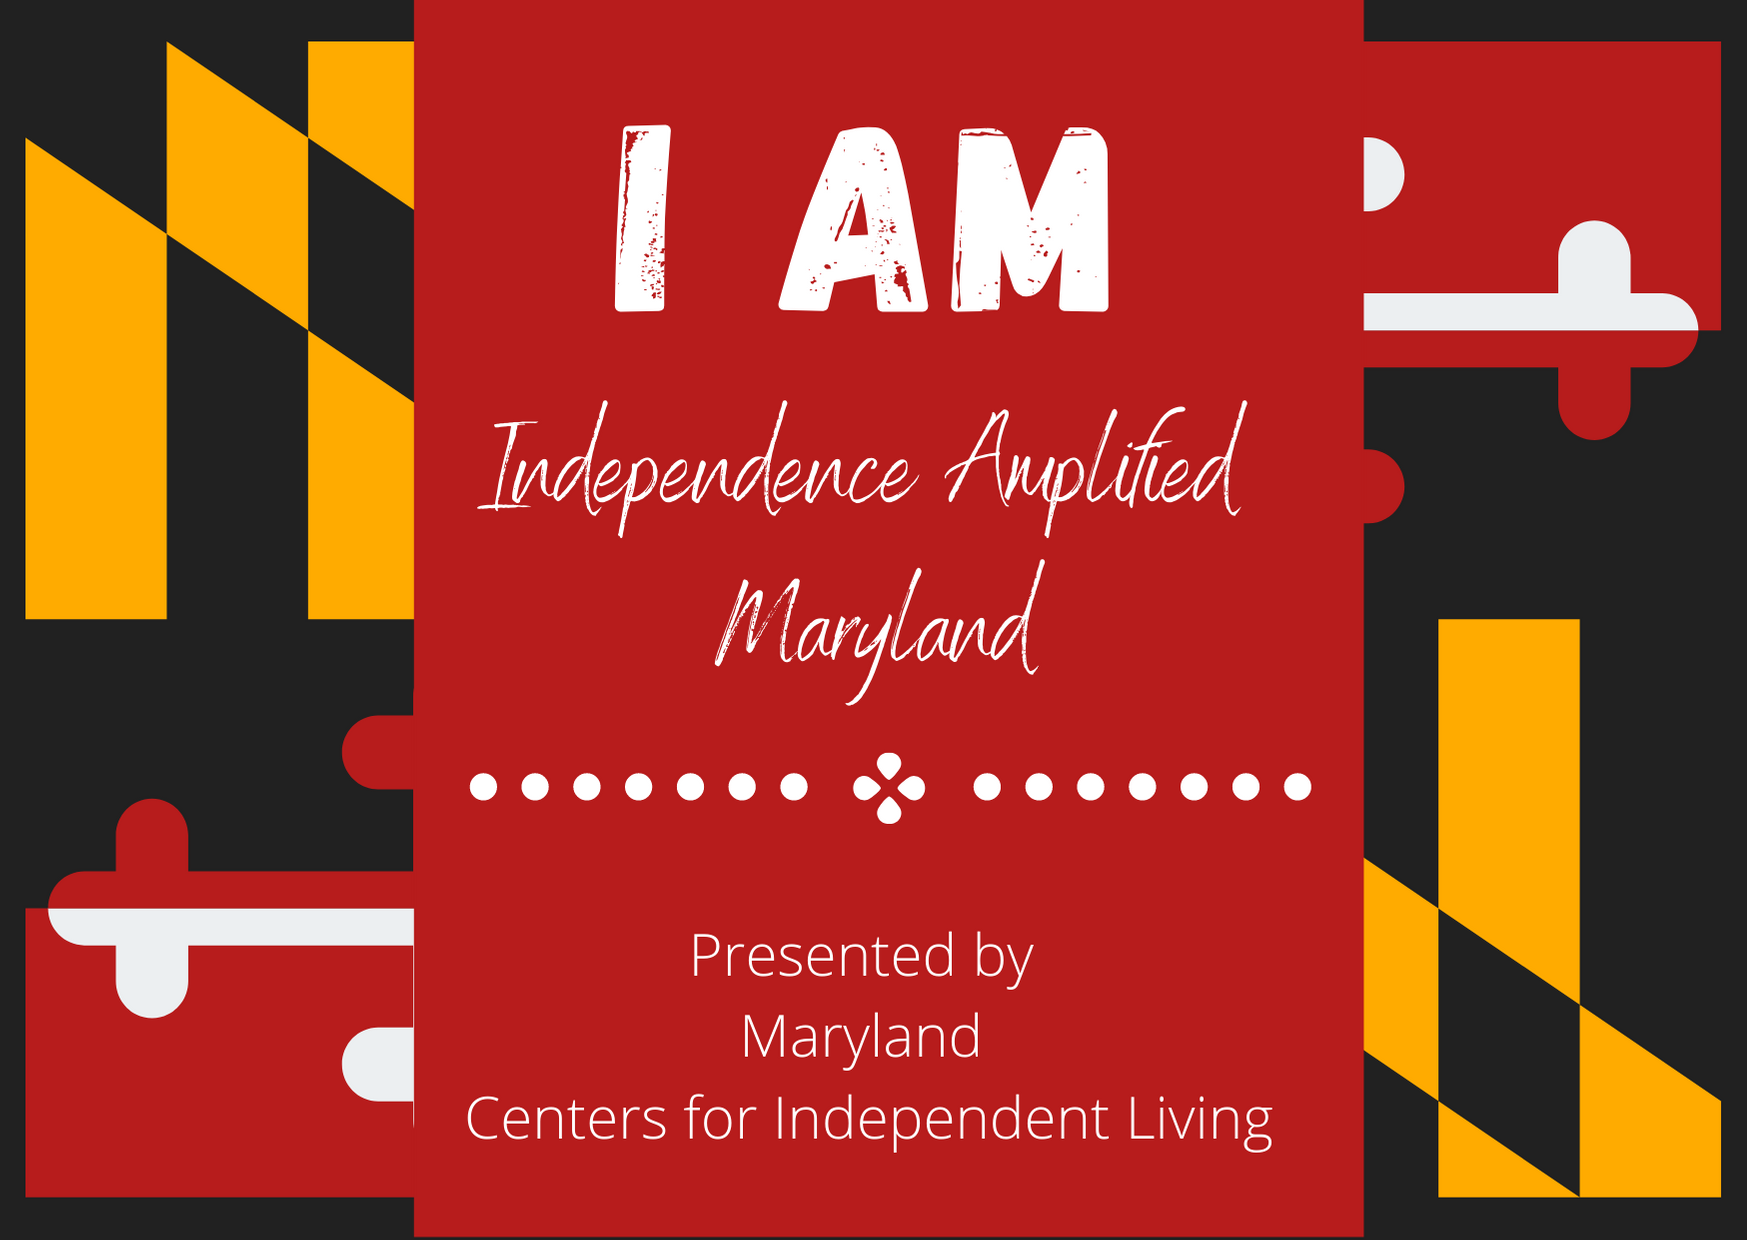 I am Independence Amplified Maryland Presented by Maryland Centers for Independent Living